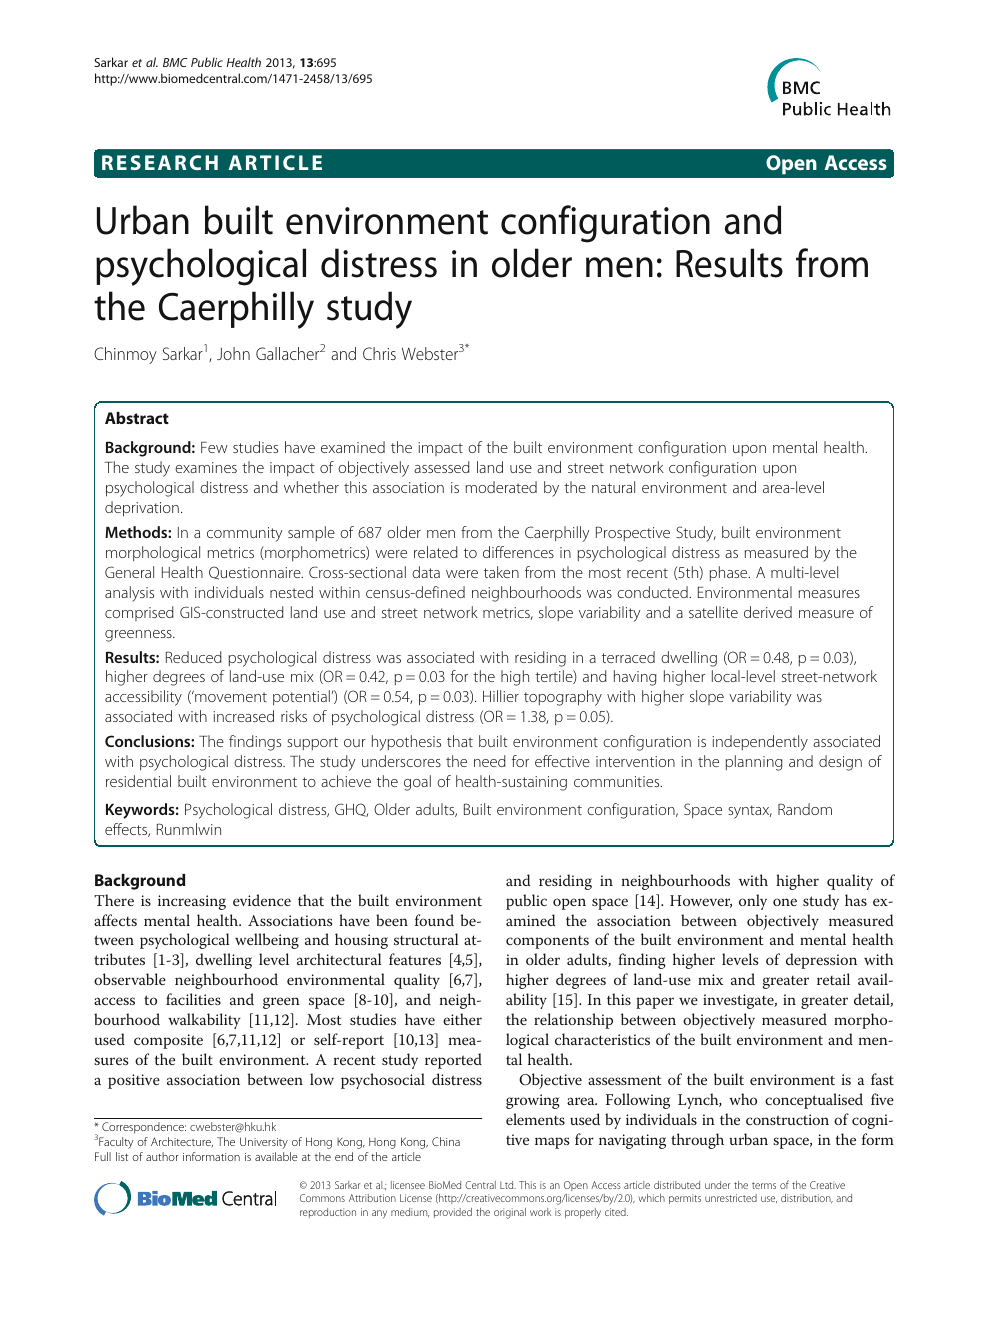 Urban built environment configuration and psychological